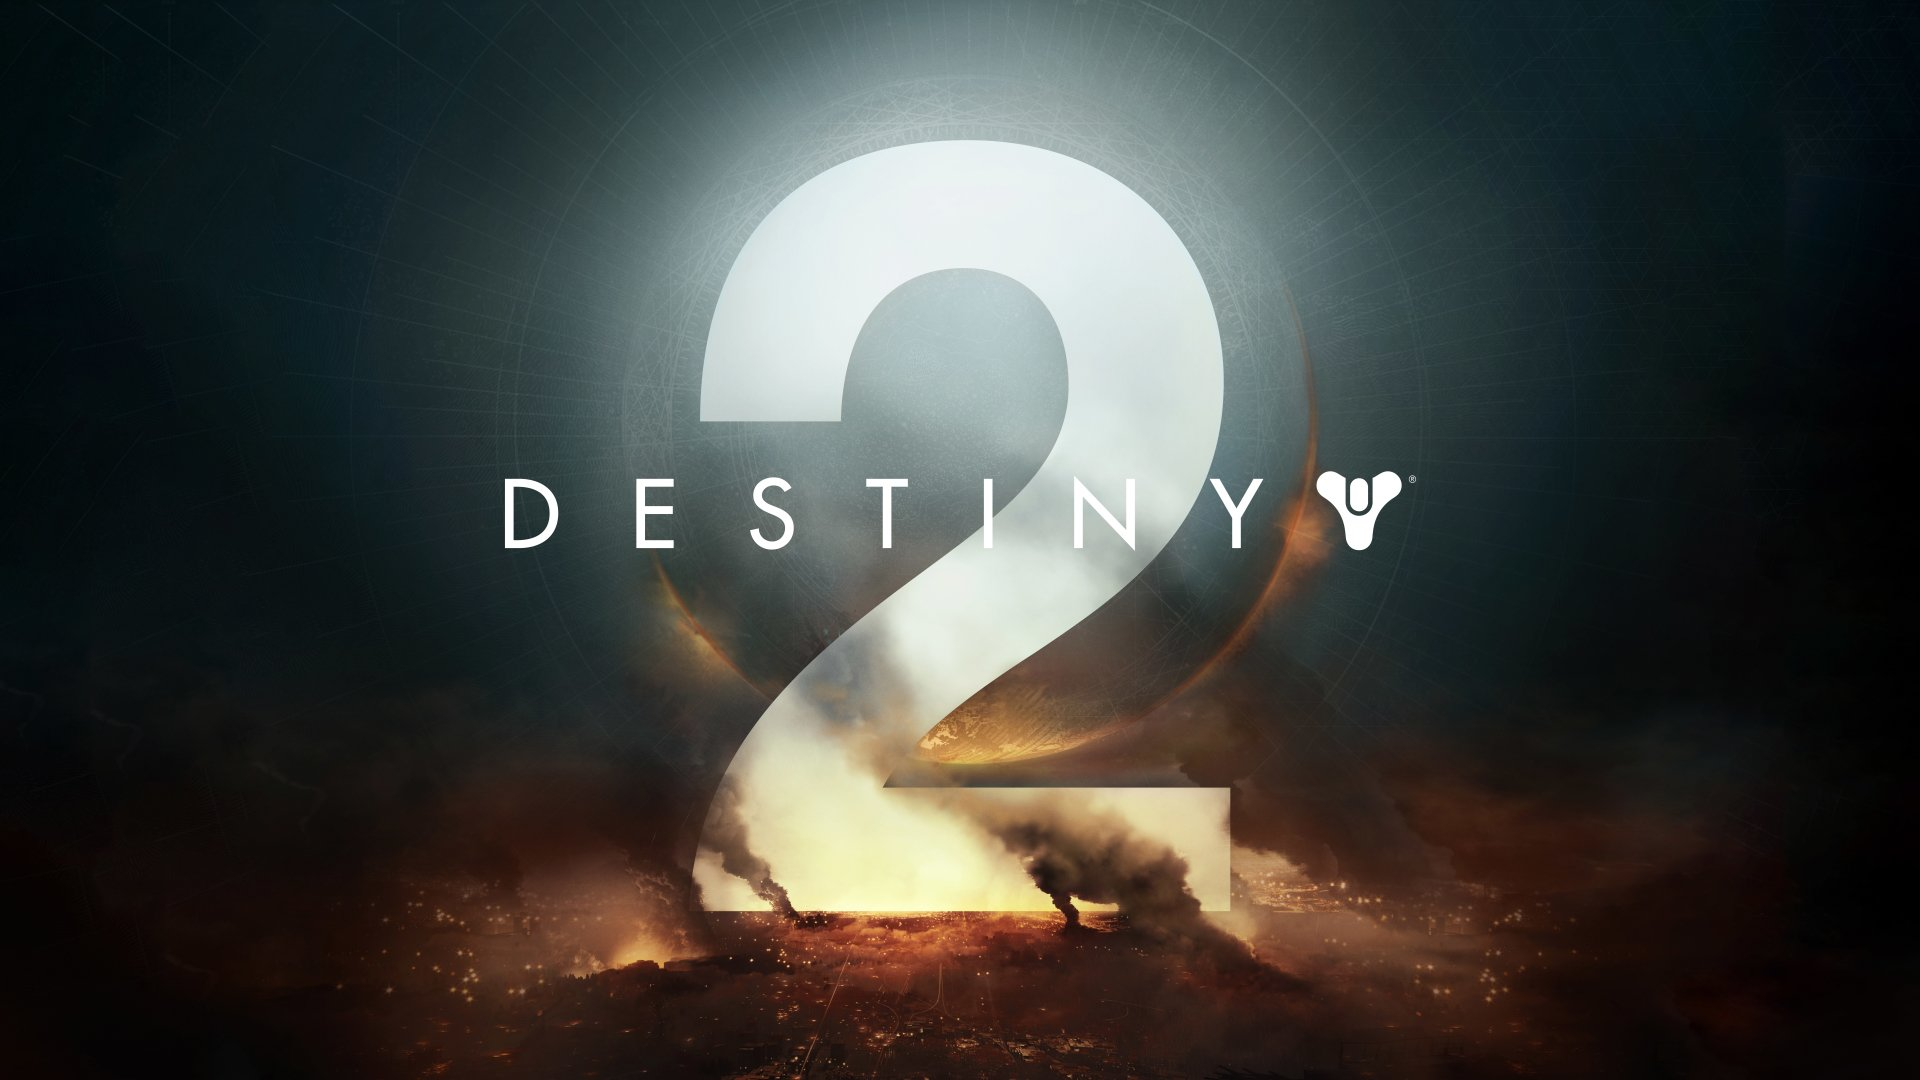 destiny wallpaper 25 - photo #25